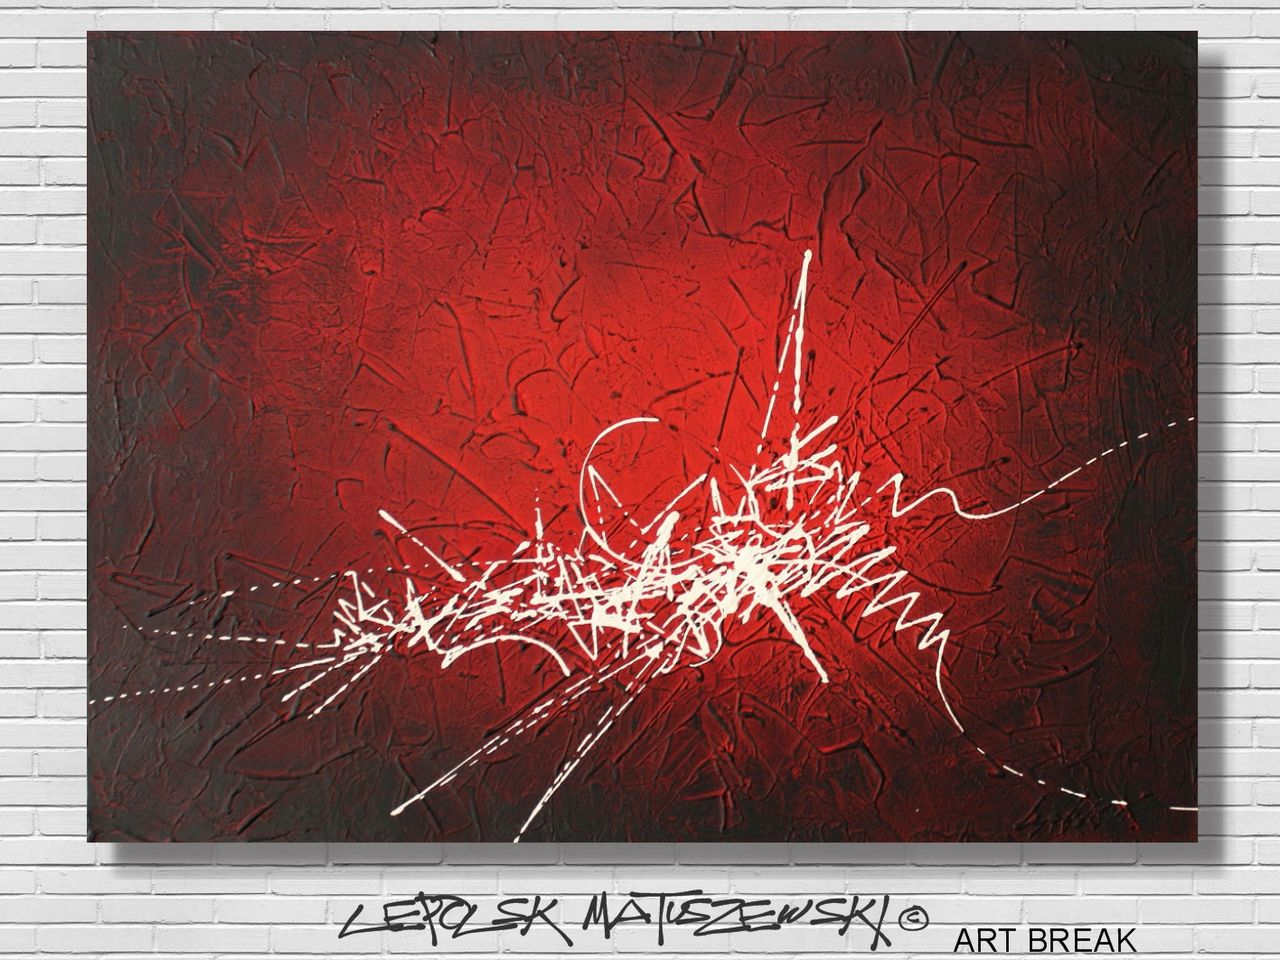 LEPOLSK MATUSZEWSKI ART BREAK by Lepolsk abstract art expressionnism  2016